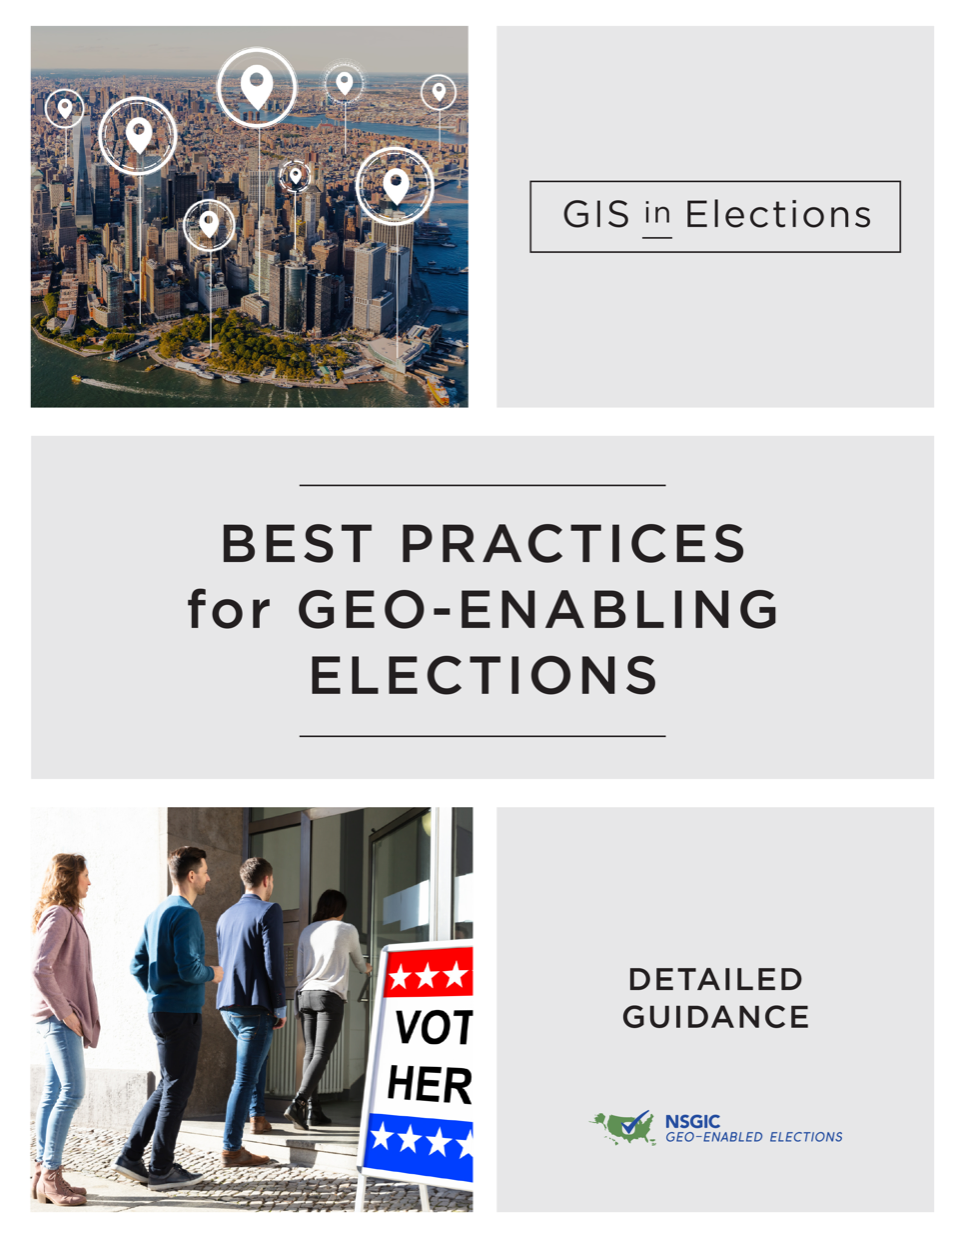 Best Practices for geo-enabled elections graphic